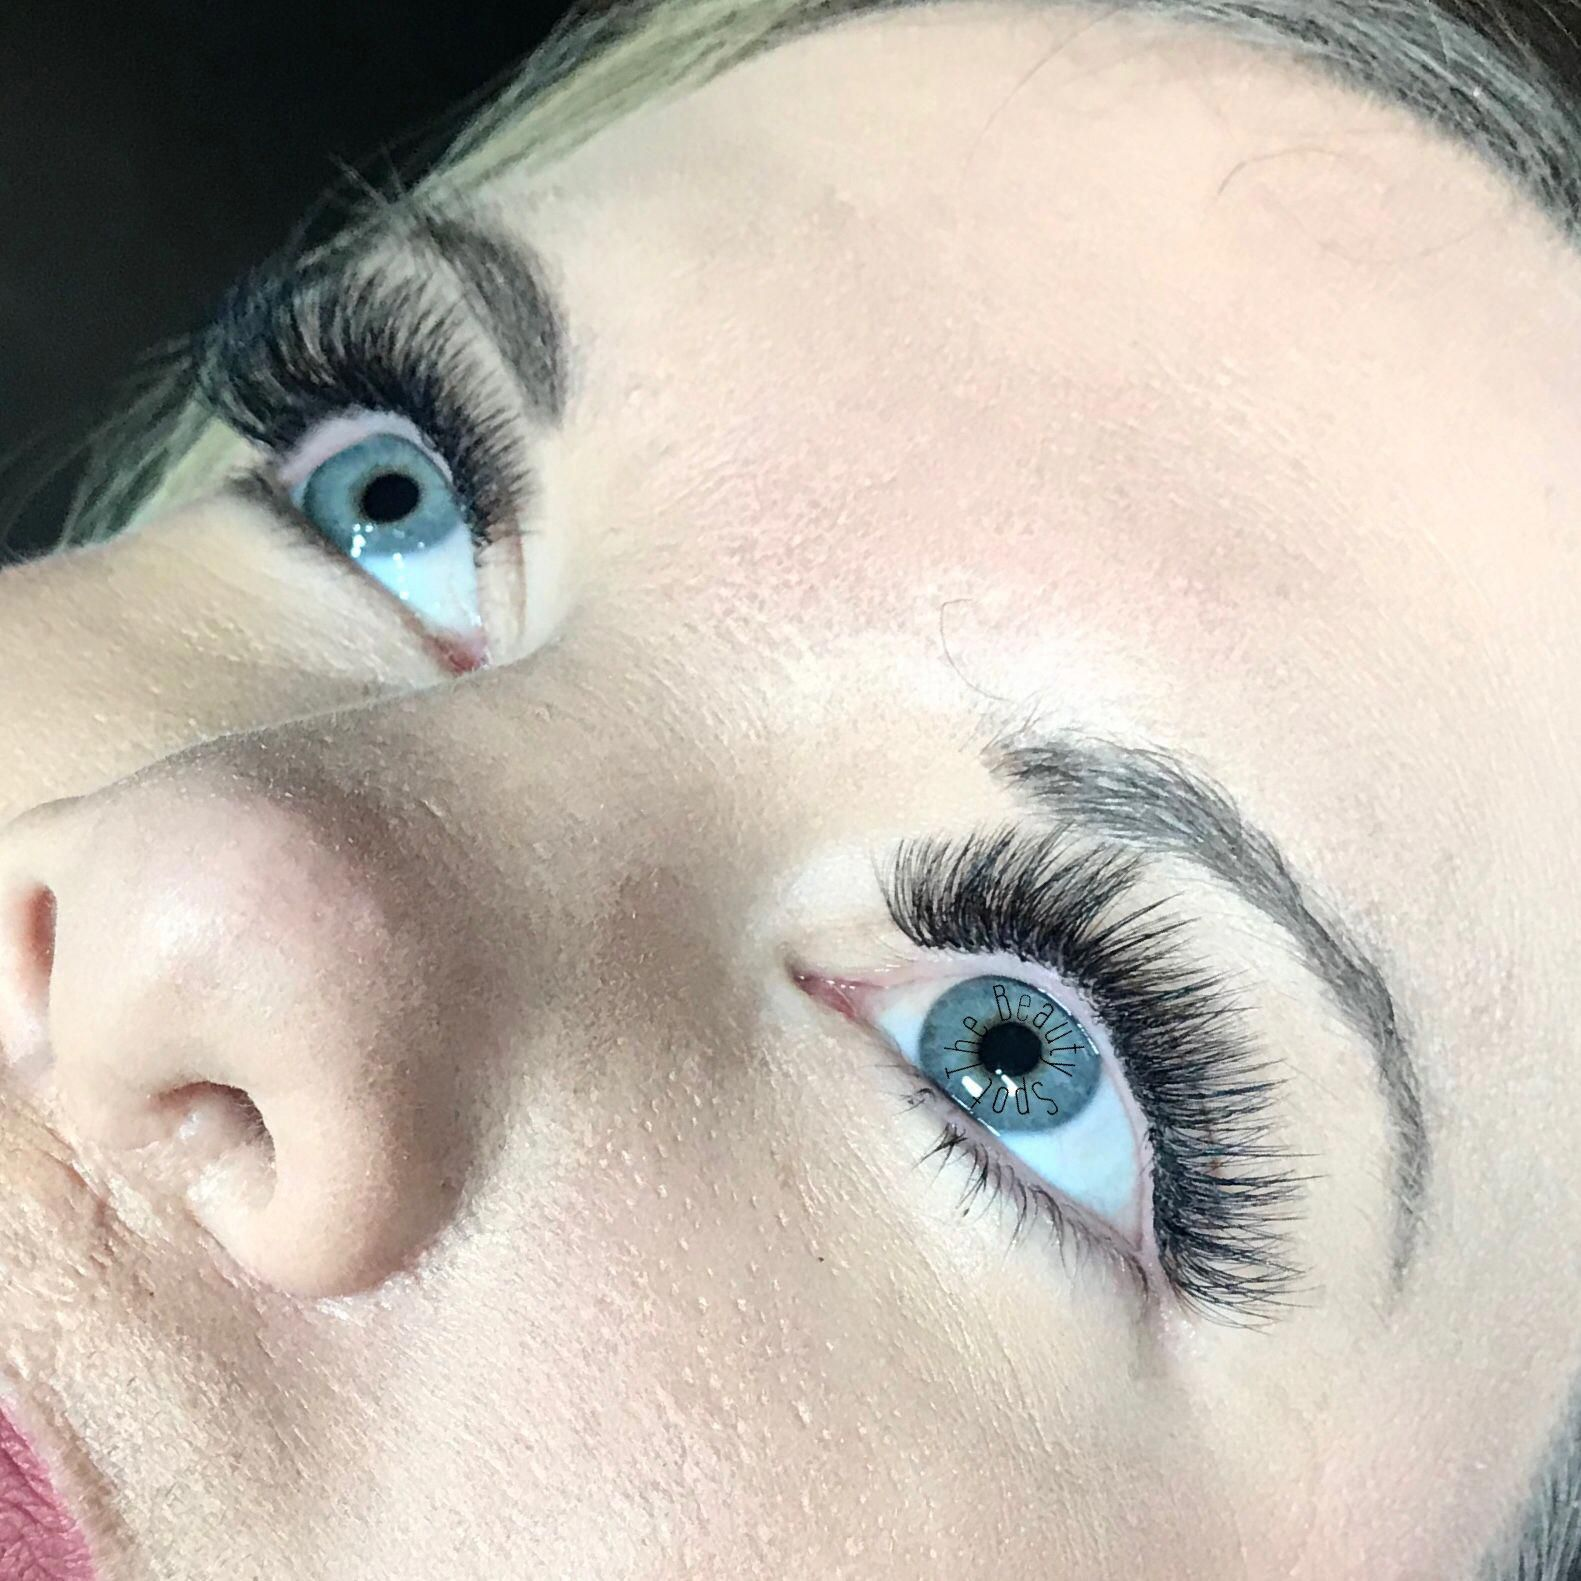 Pin by Marisacook on eye makeup new techniques Eye